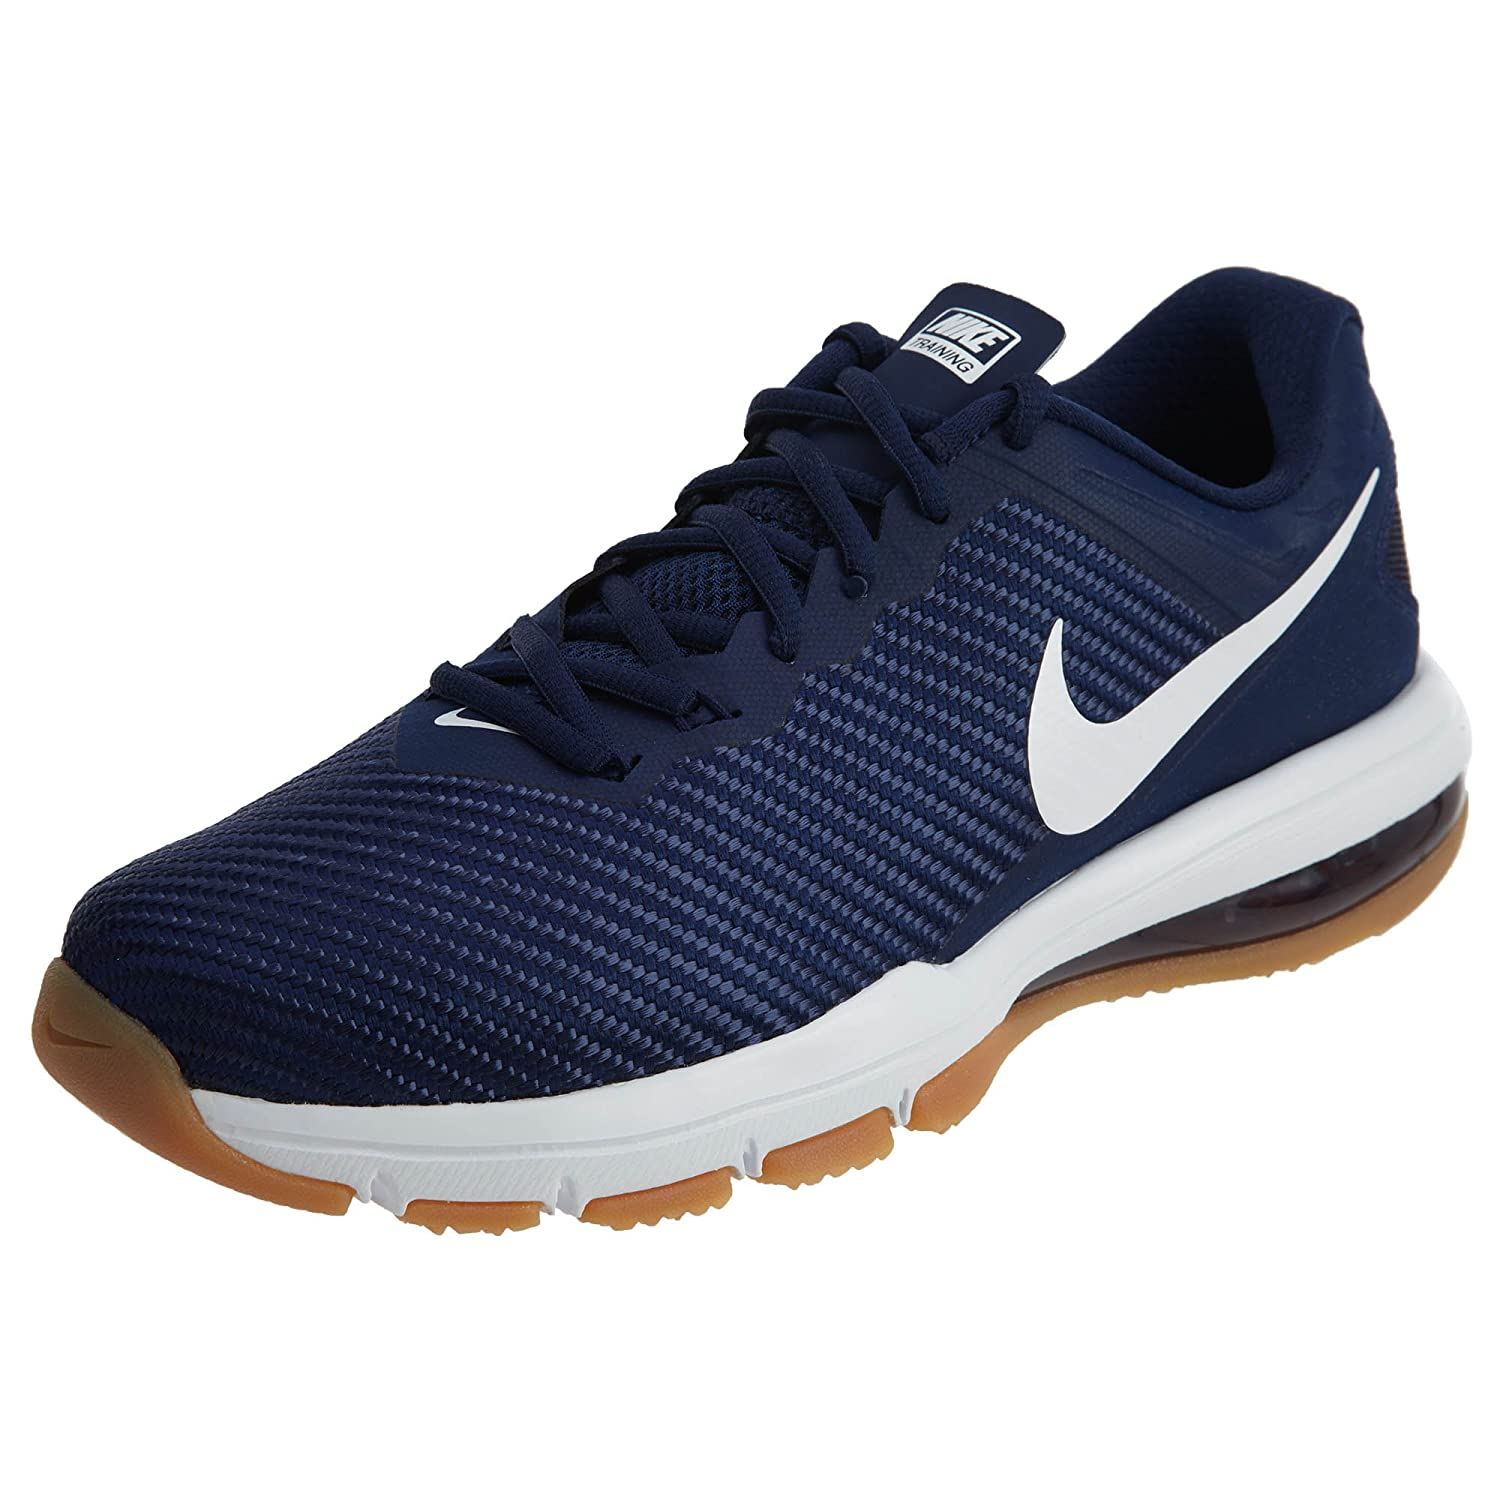 NIKE AIR MAX FULL RIDE TR 1.5 Neu 90 Janoski Bruin 1 Command  46 EU|Binary Blue White